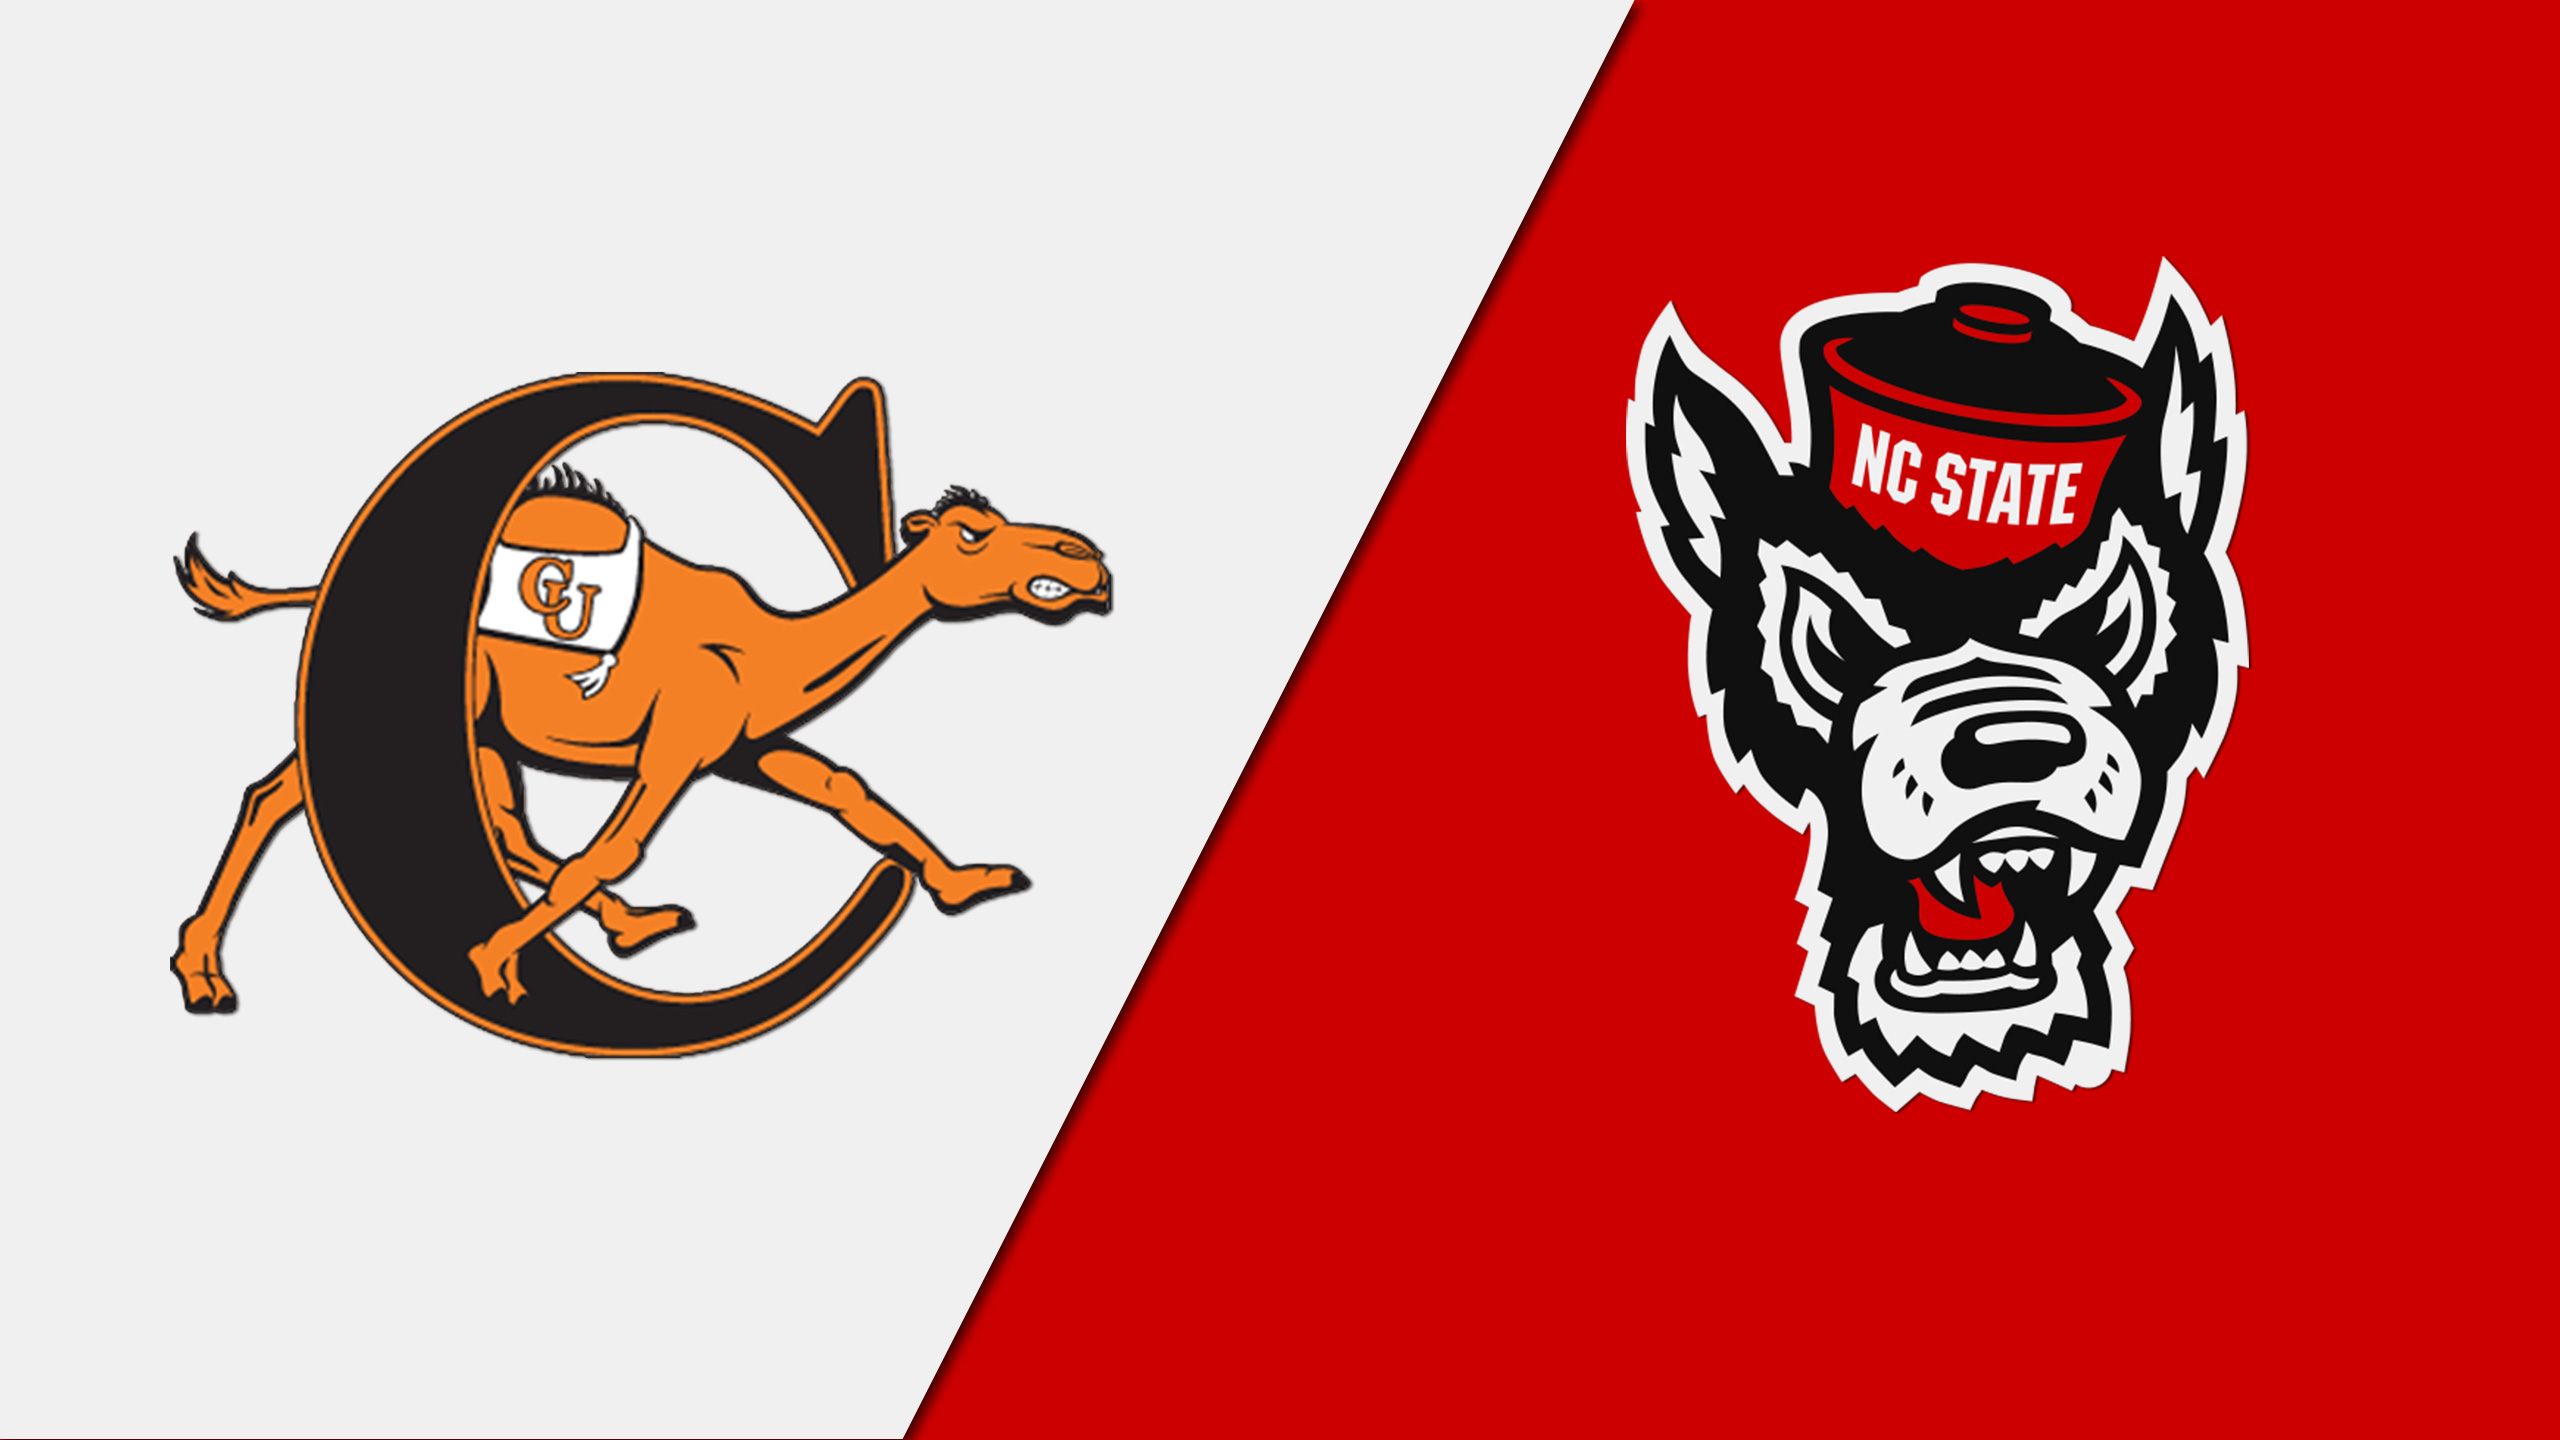 Campbell vs. NC State (First Round) (NCAA Division I Men's Soccer Championship)